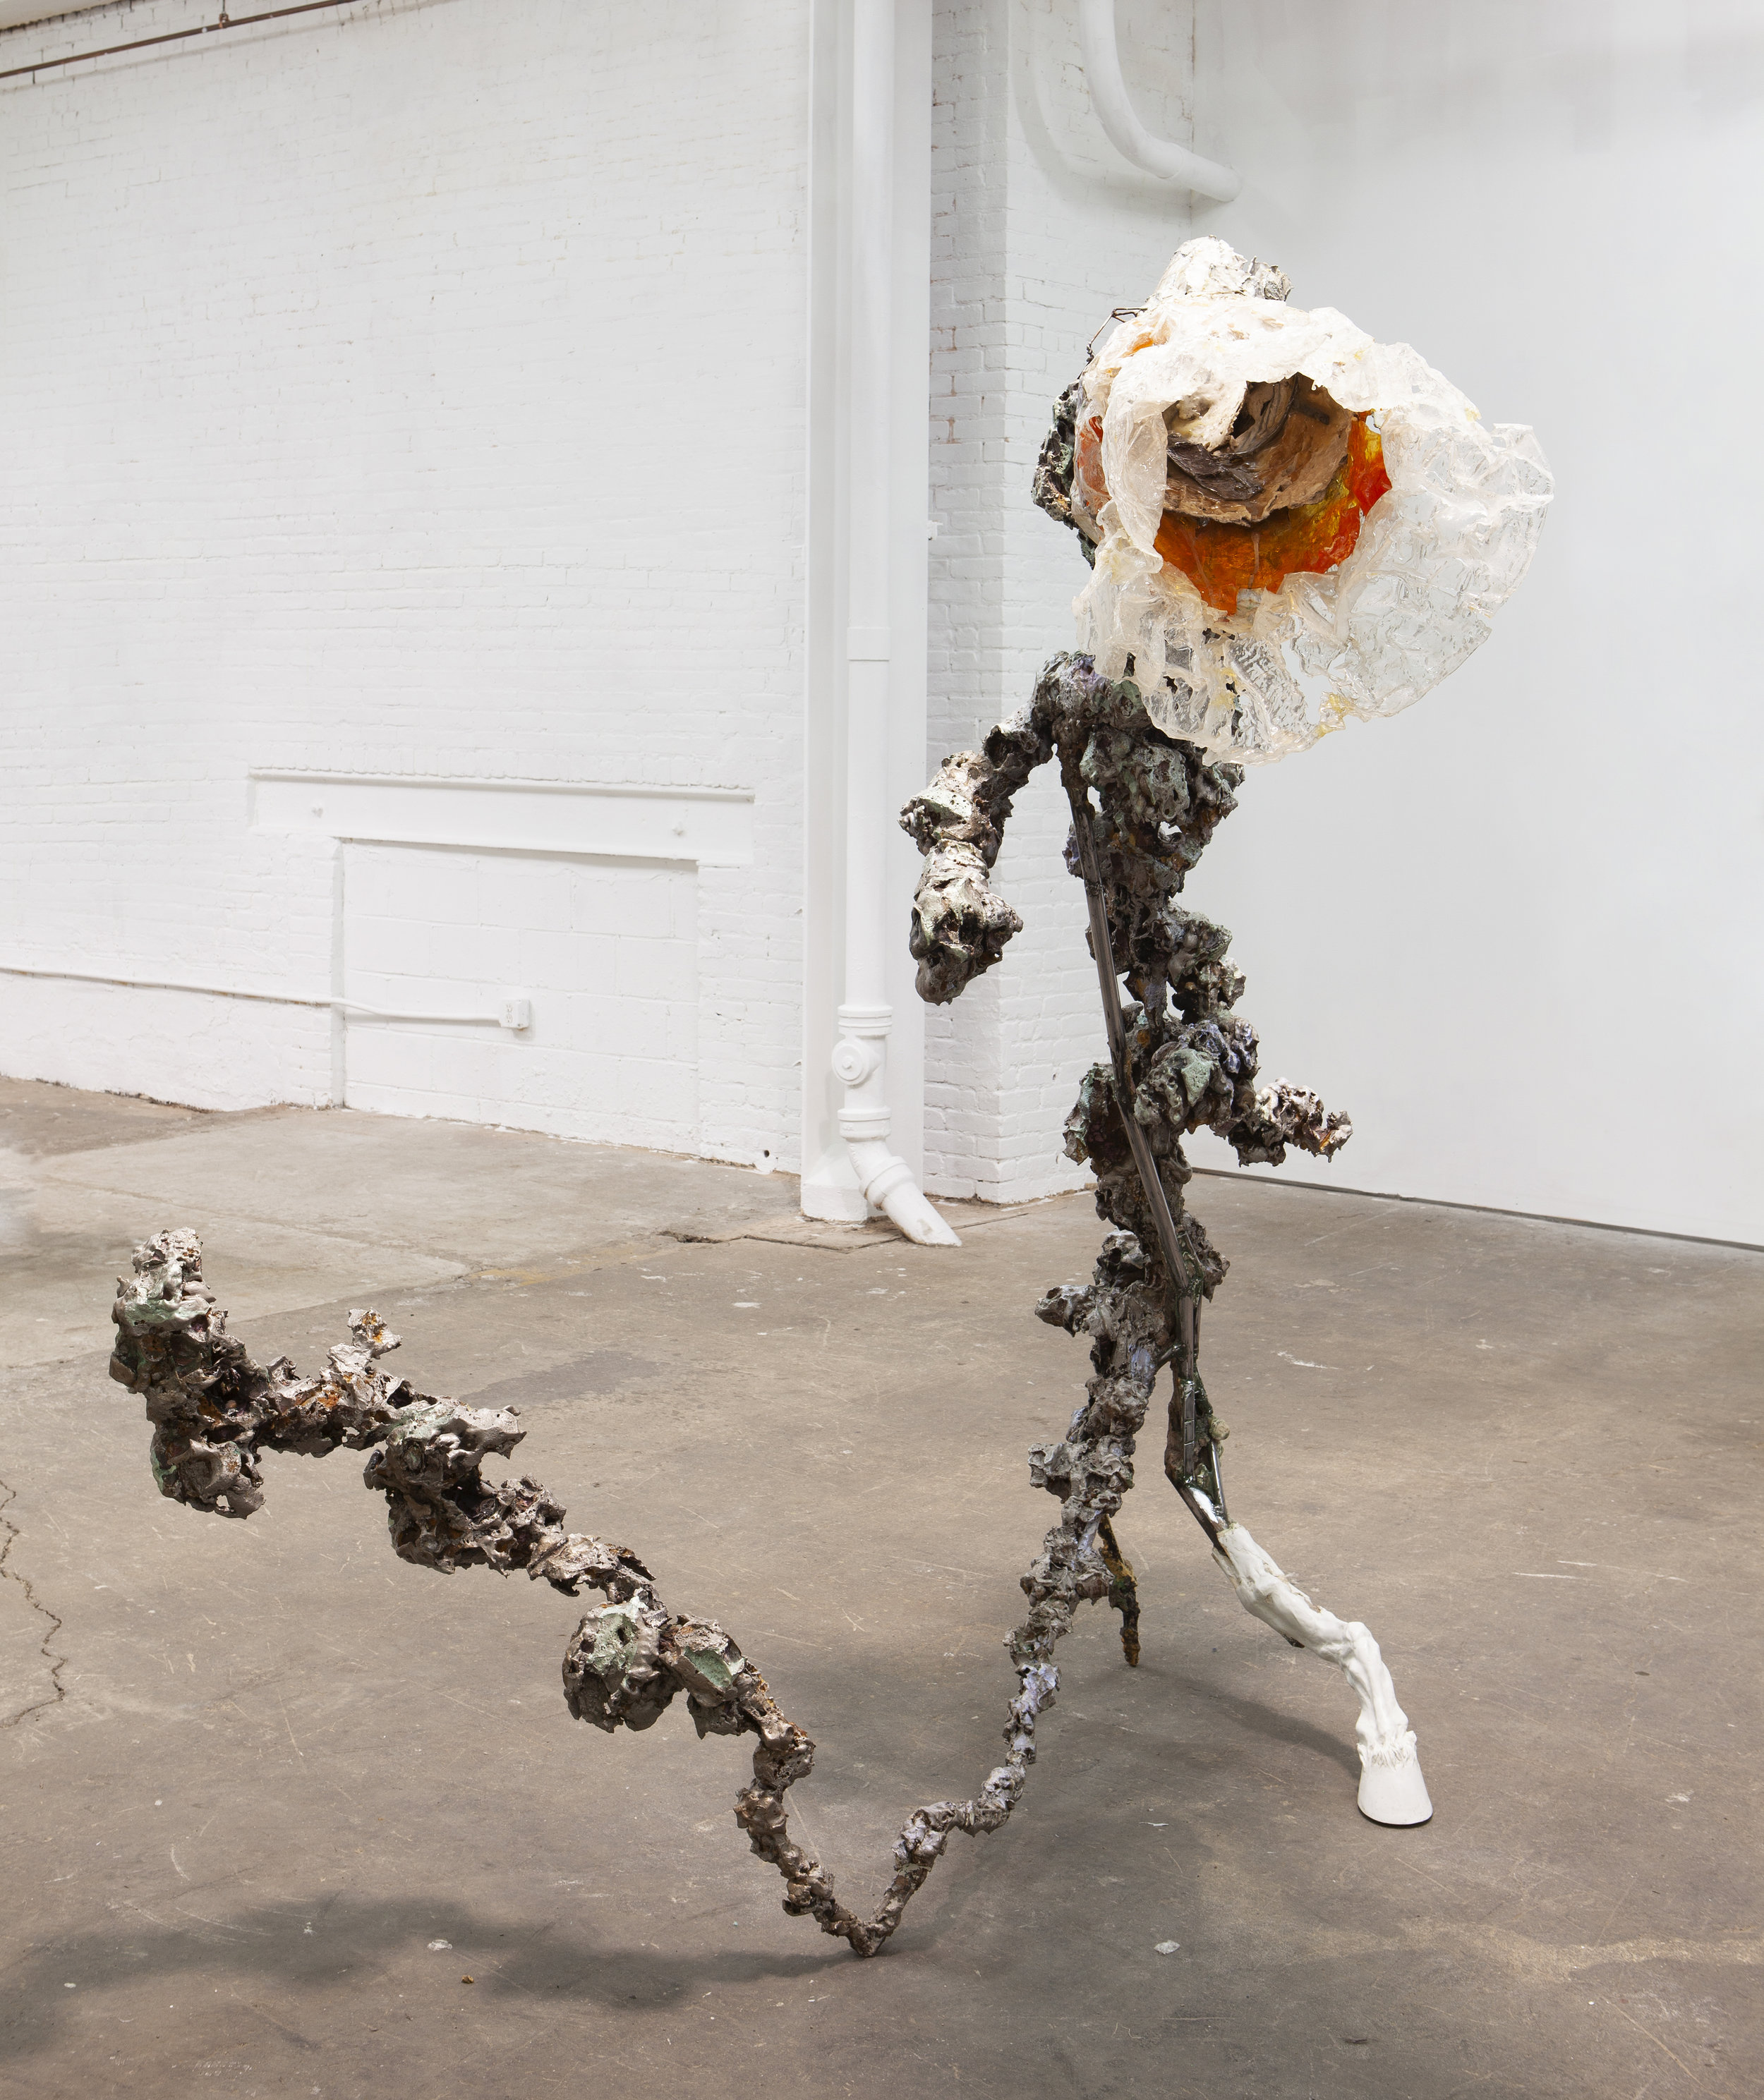 Yasue Maetake   Urethane Flower on Steel Stem Clad with Foam , 2013 Steel, polyurethane resin, epoxy clay, burnt and varnished styrofoam 91 x 110 x 67 inches 231.1 x 279.4 x 170.2 cm